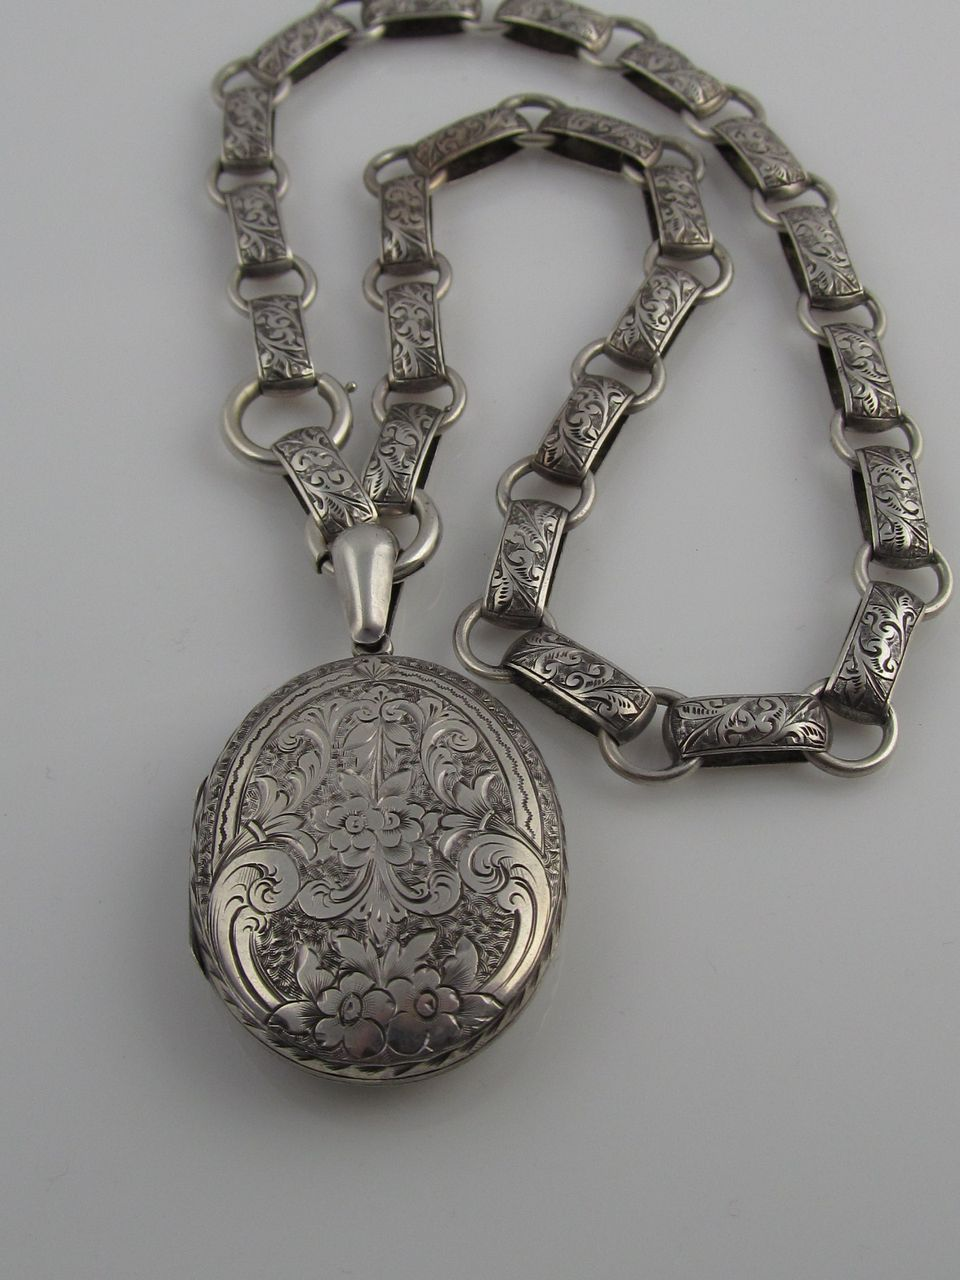 Victorian Hand Engraved Sterling Silver Locket with Original Book Chain